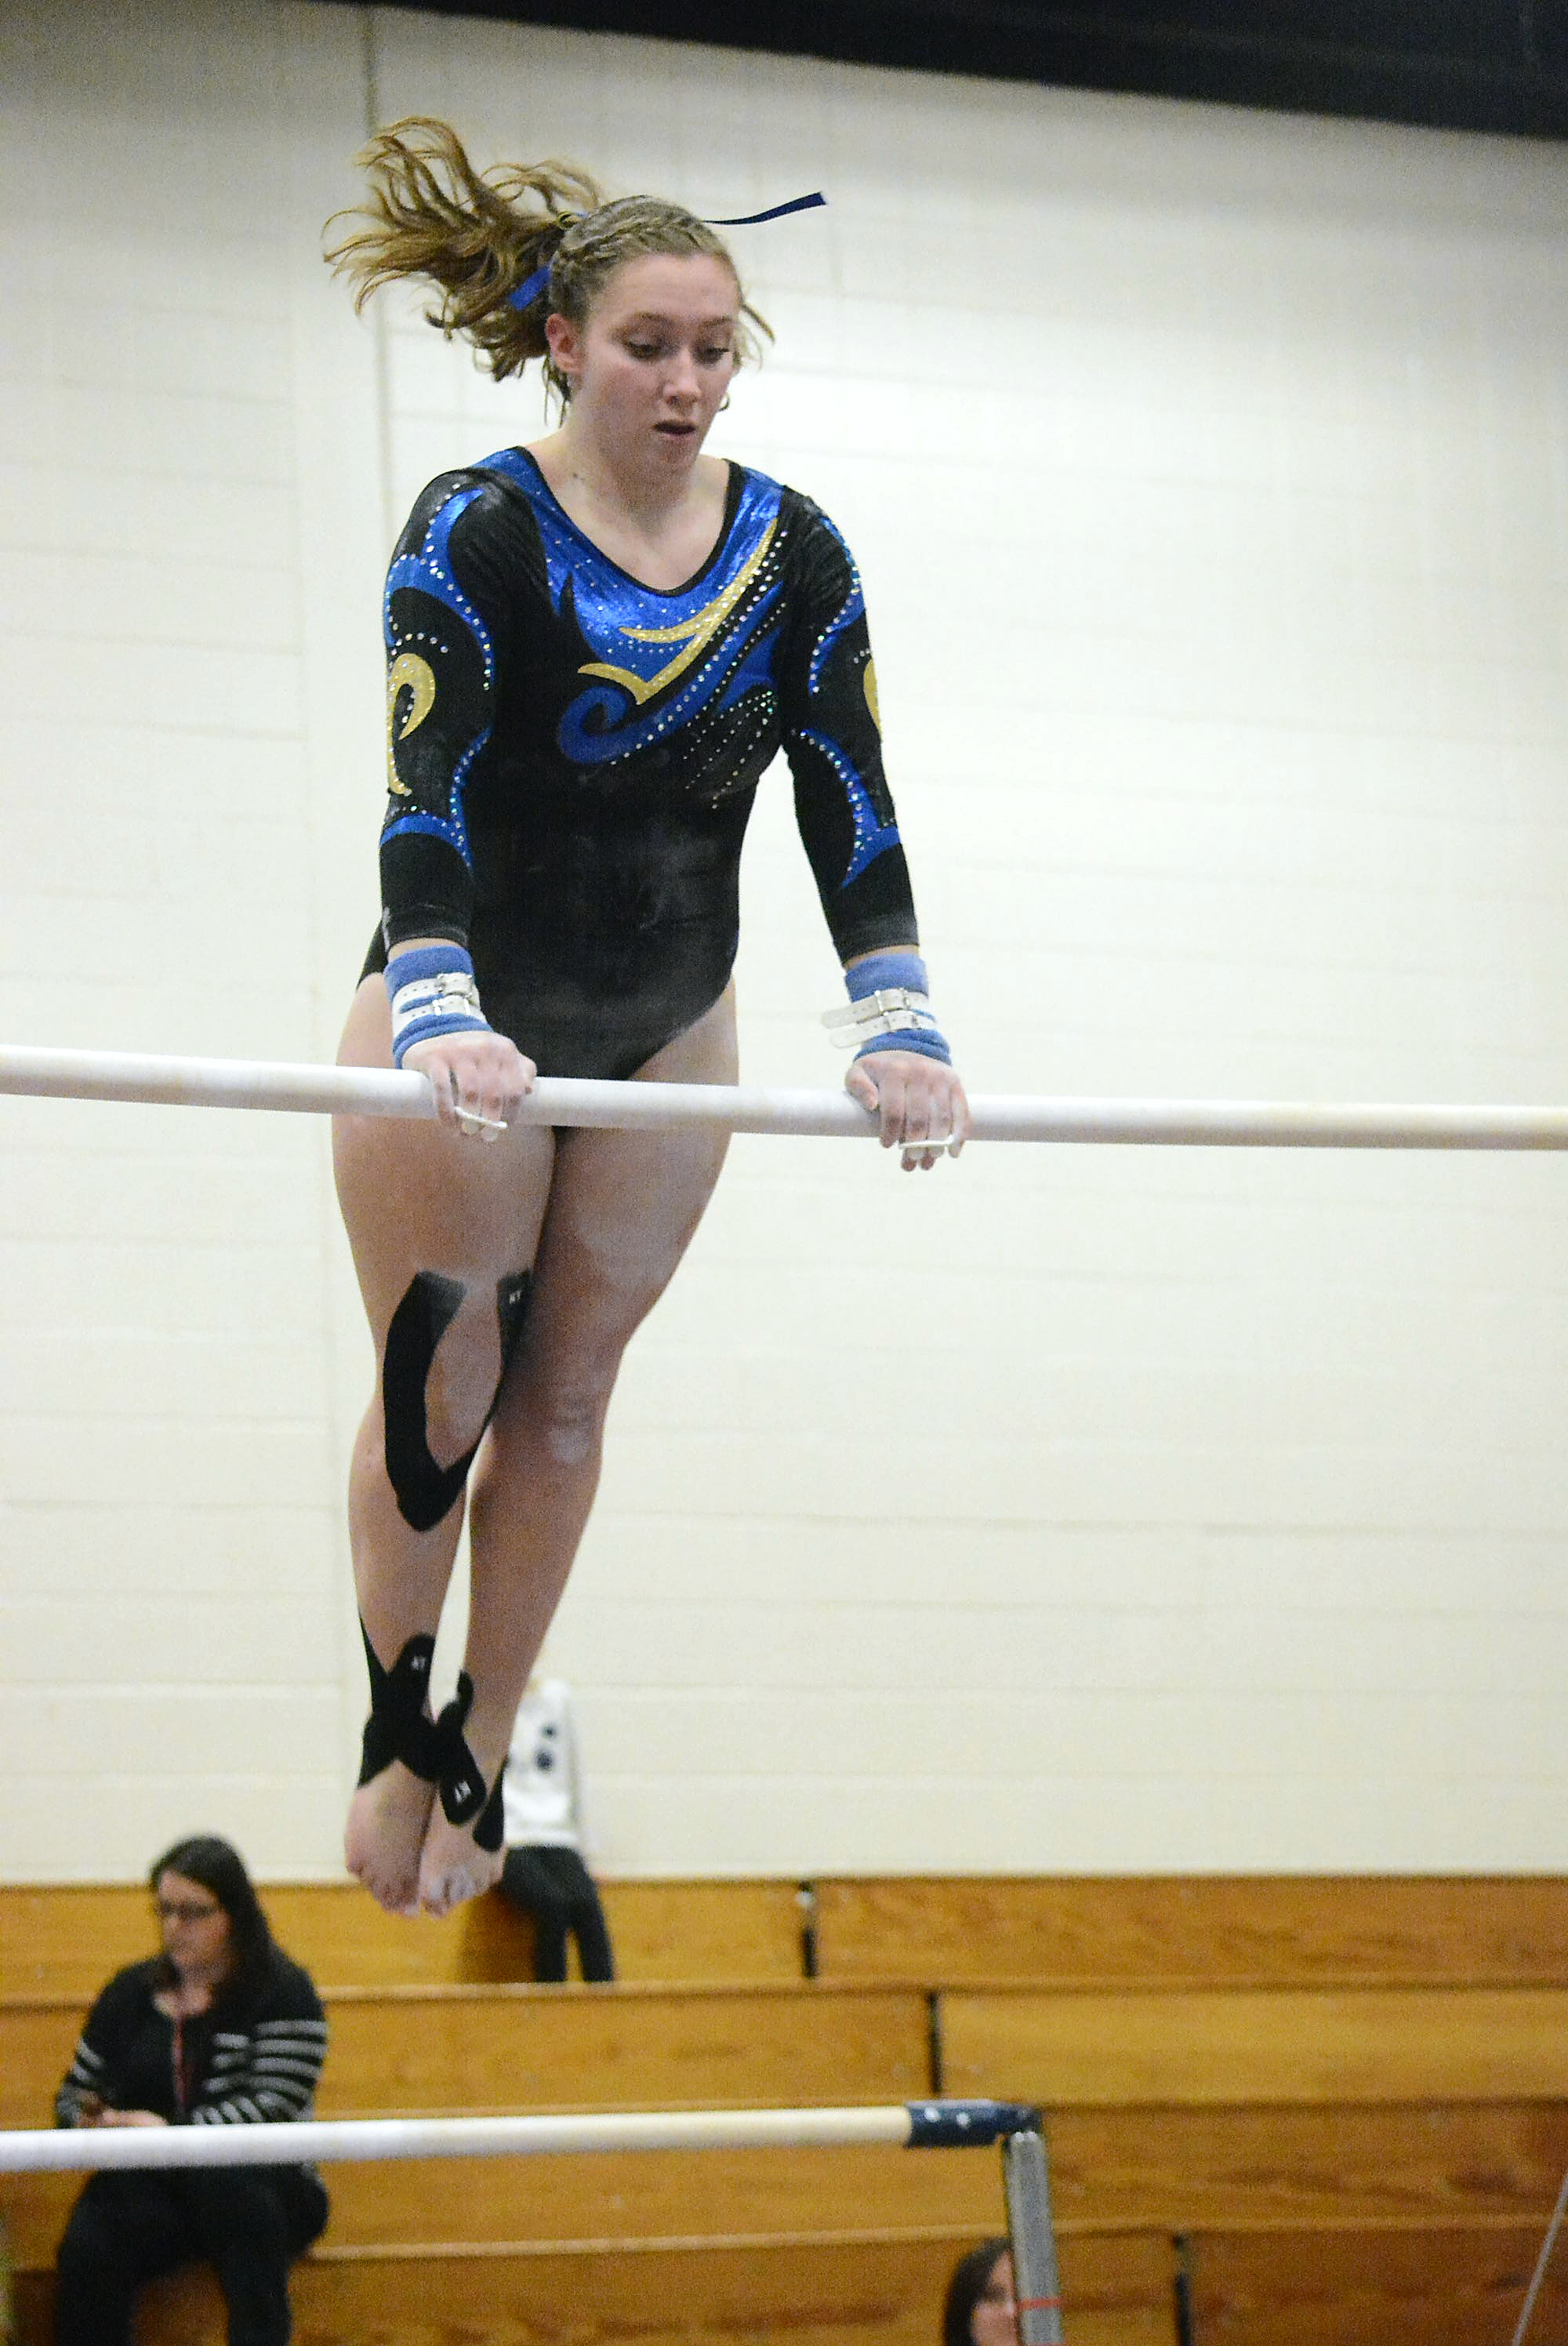 Opposing Gymnasts And Coaches Work Together To Get Better | The